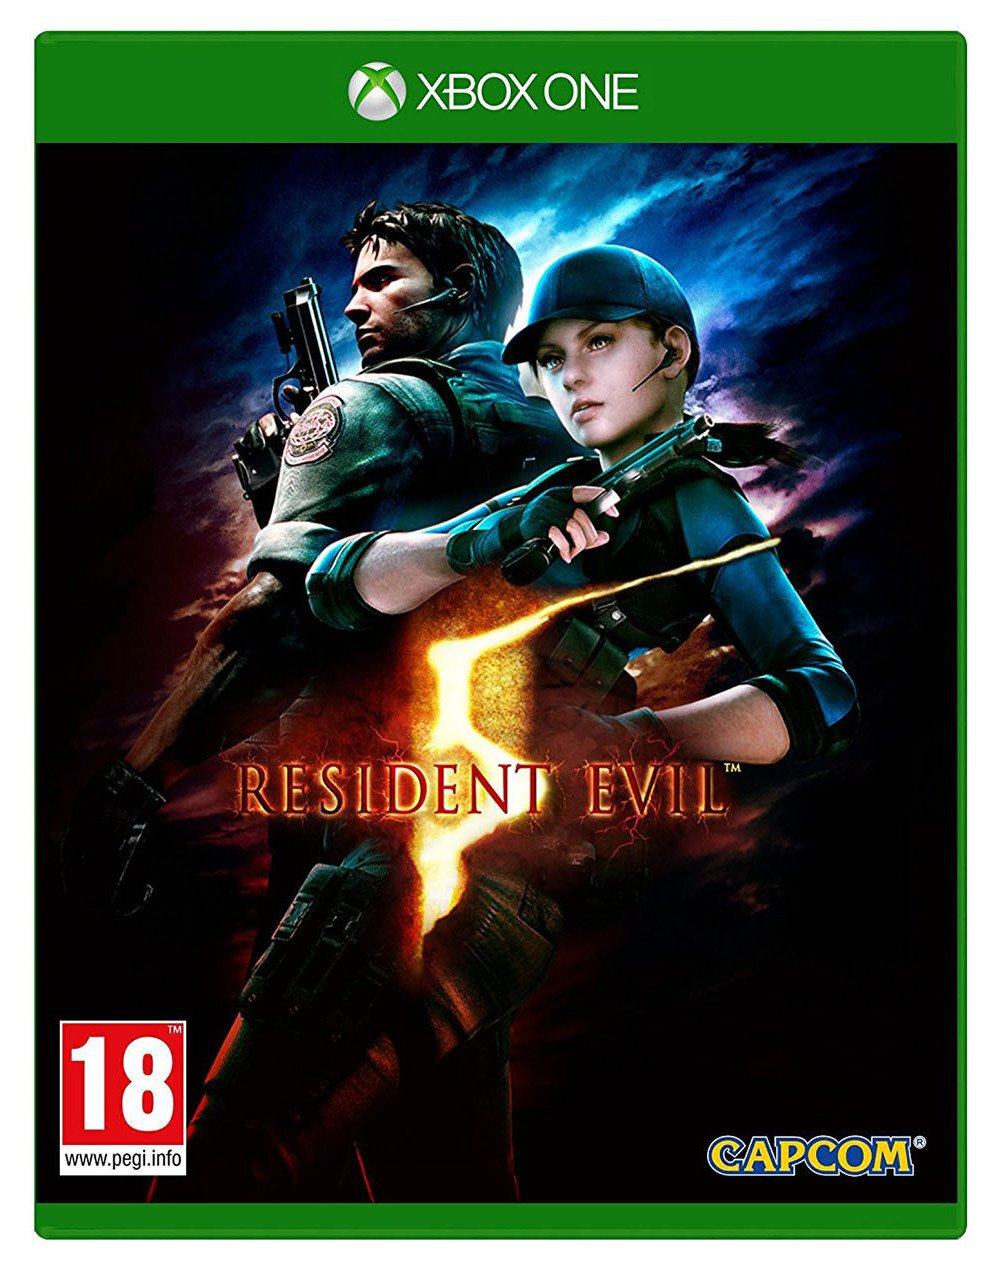 Image of Resident Evil Xbox One Game.